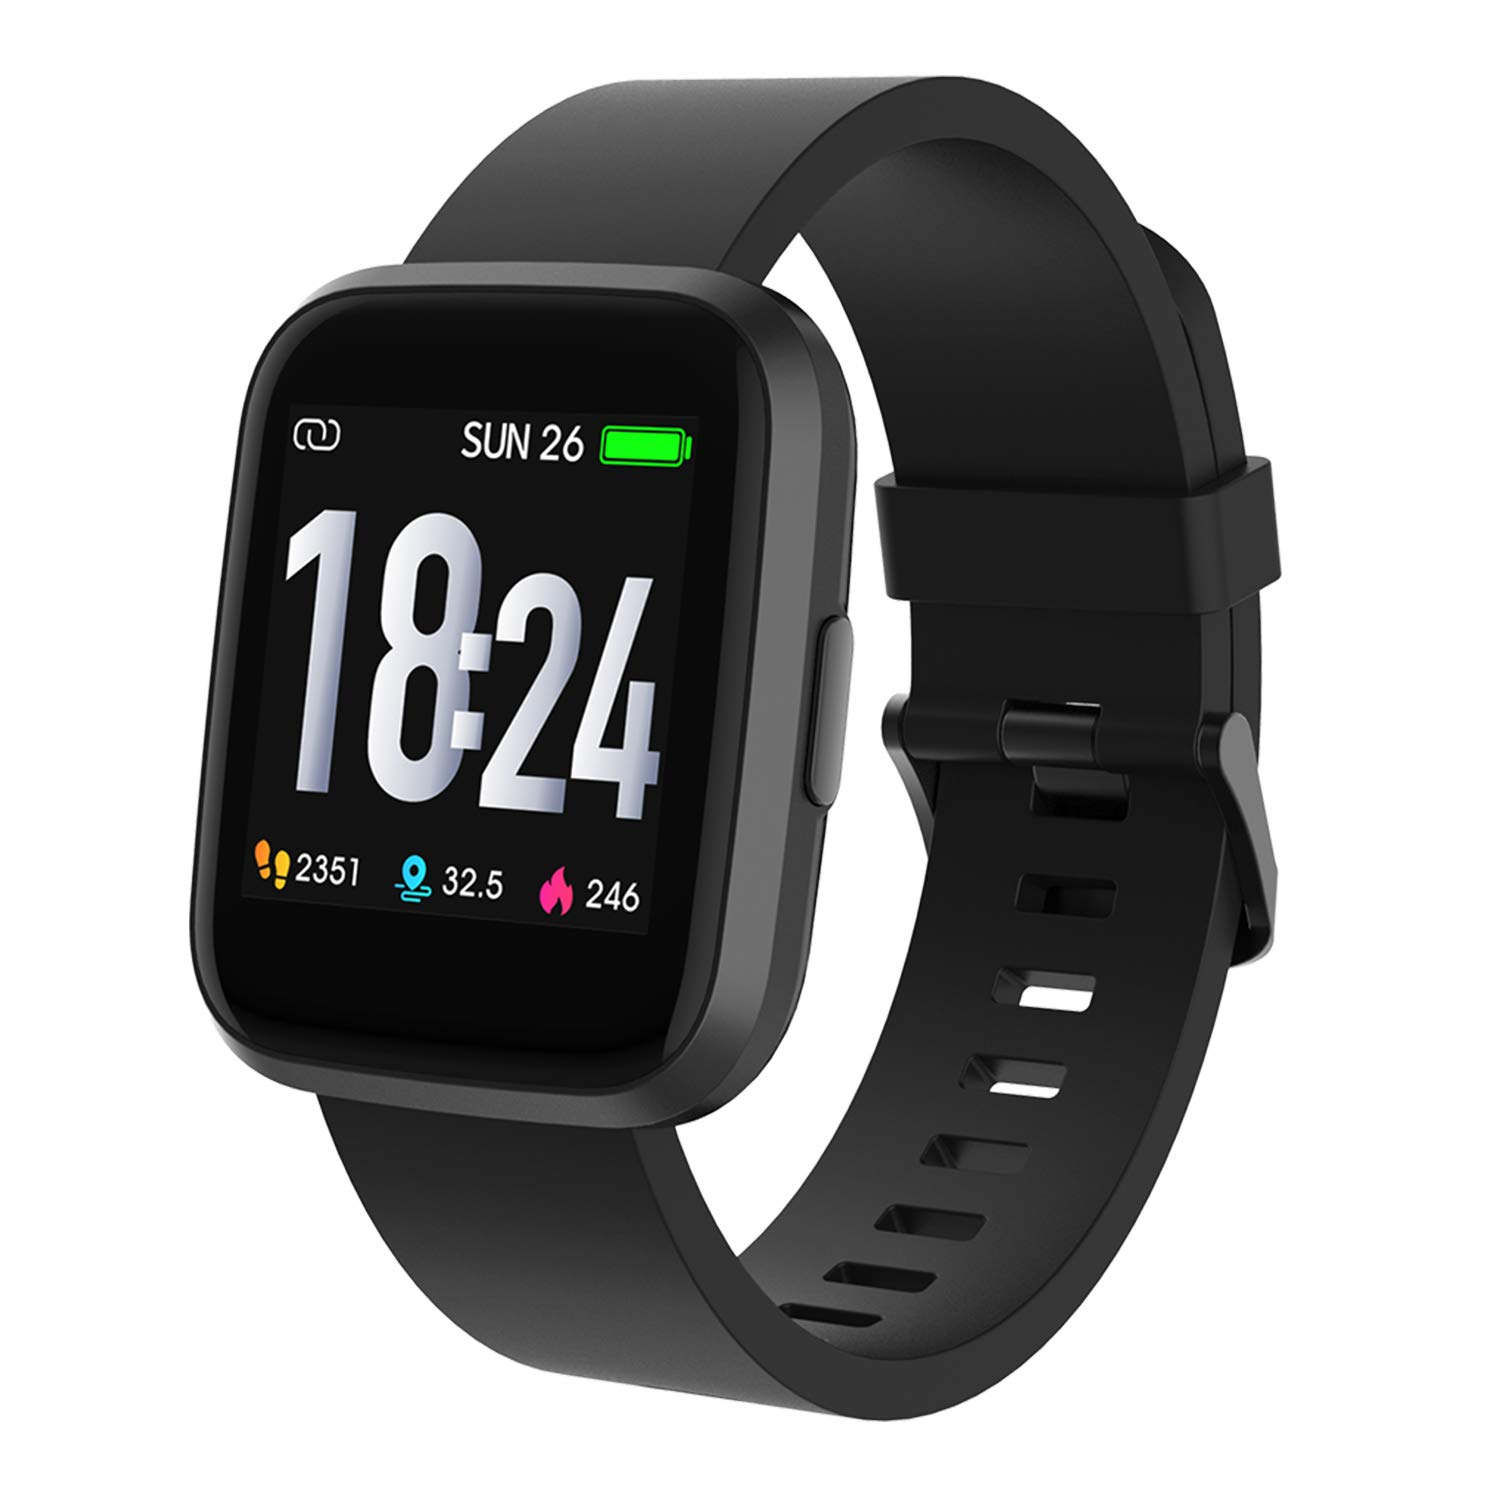 Crossbeats Ignite Metal Smart Watch 1.4'' Full Touch Men Women Fitness Tracker Blood Pressure Blood Oxygen Heart Rate Monitor Waterproof Exercise Smartwatch for iPhone Samsung Android (Carbon Black) : Amazon.in: Electronics